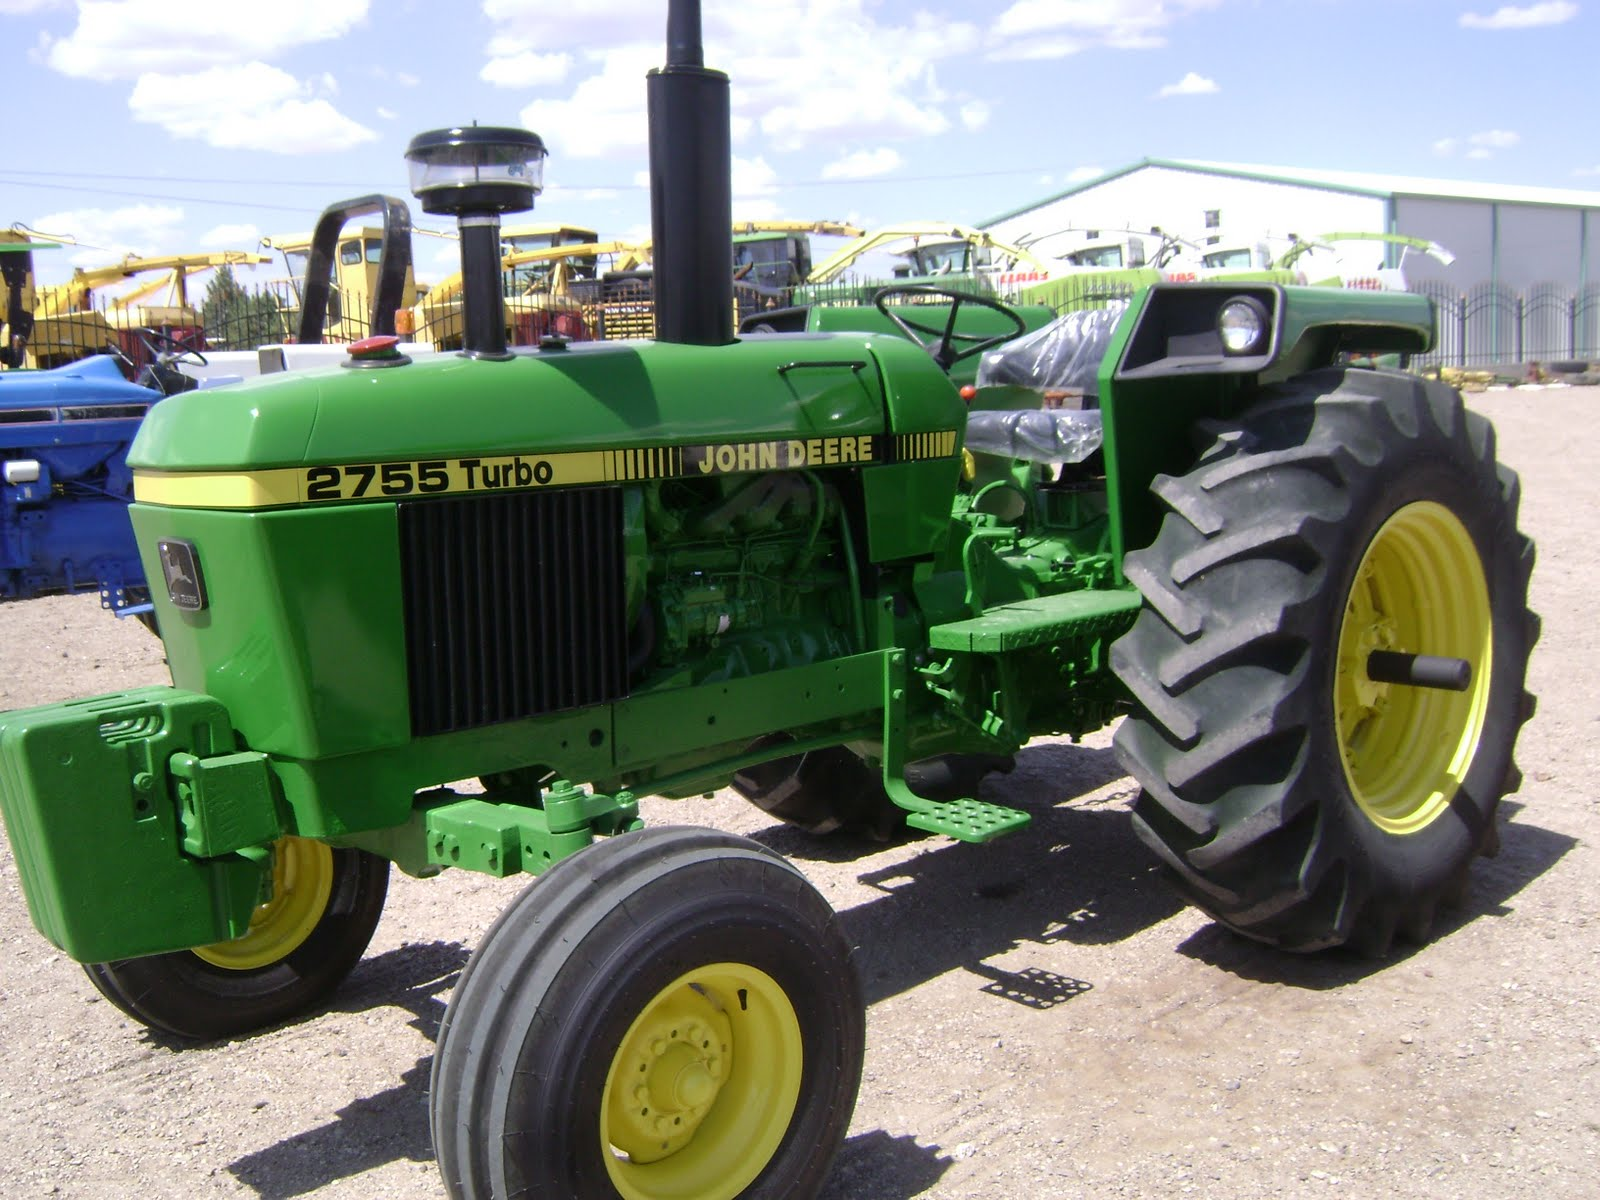 Maquinaria Agricola Industrial  Tractor John Deere 2755 Turbo  14500 Dlls  Mexicano Jhie14600